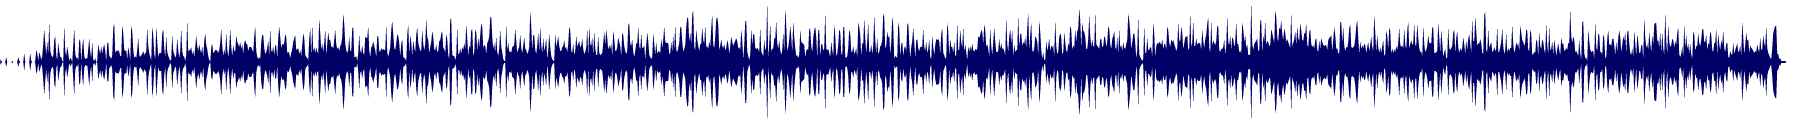 waveform of track #77686